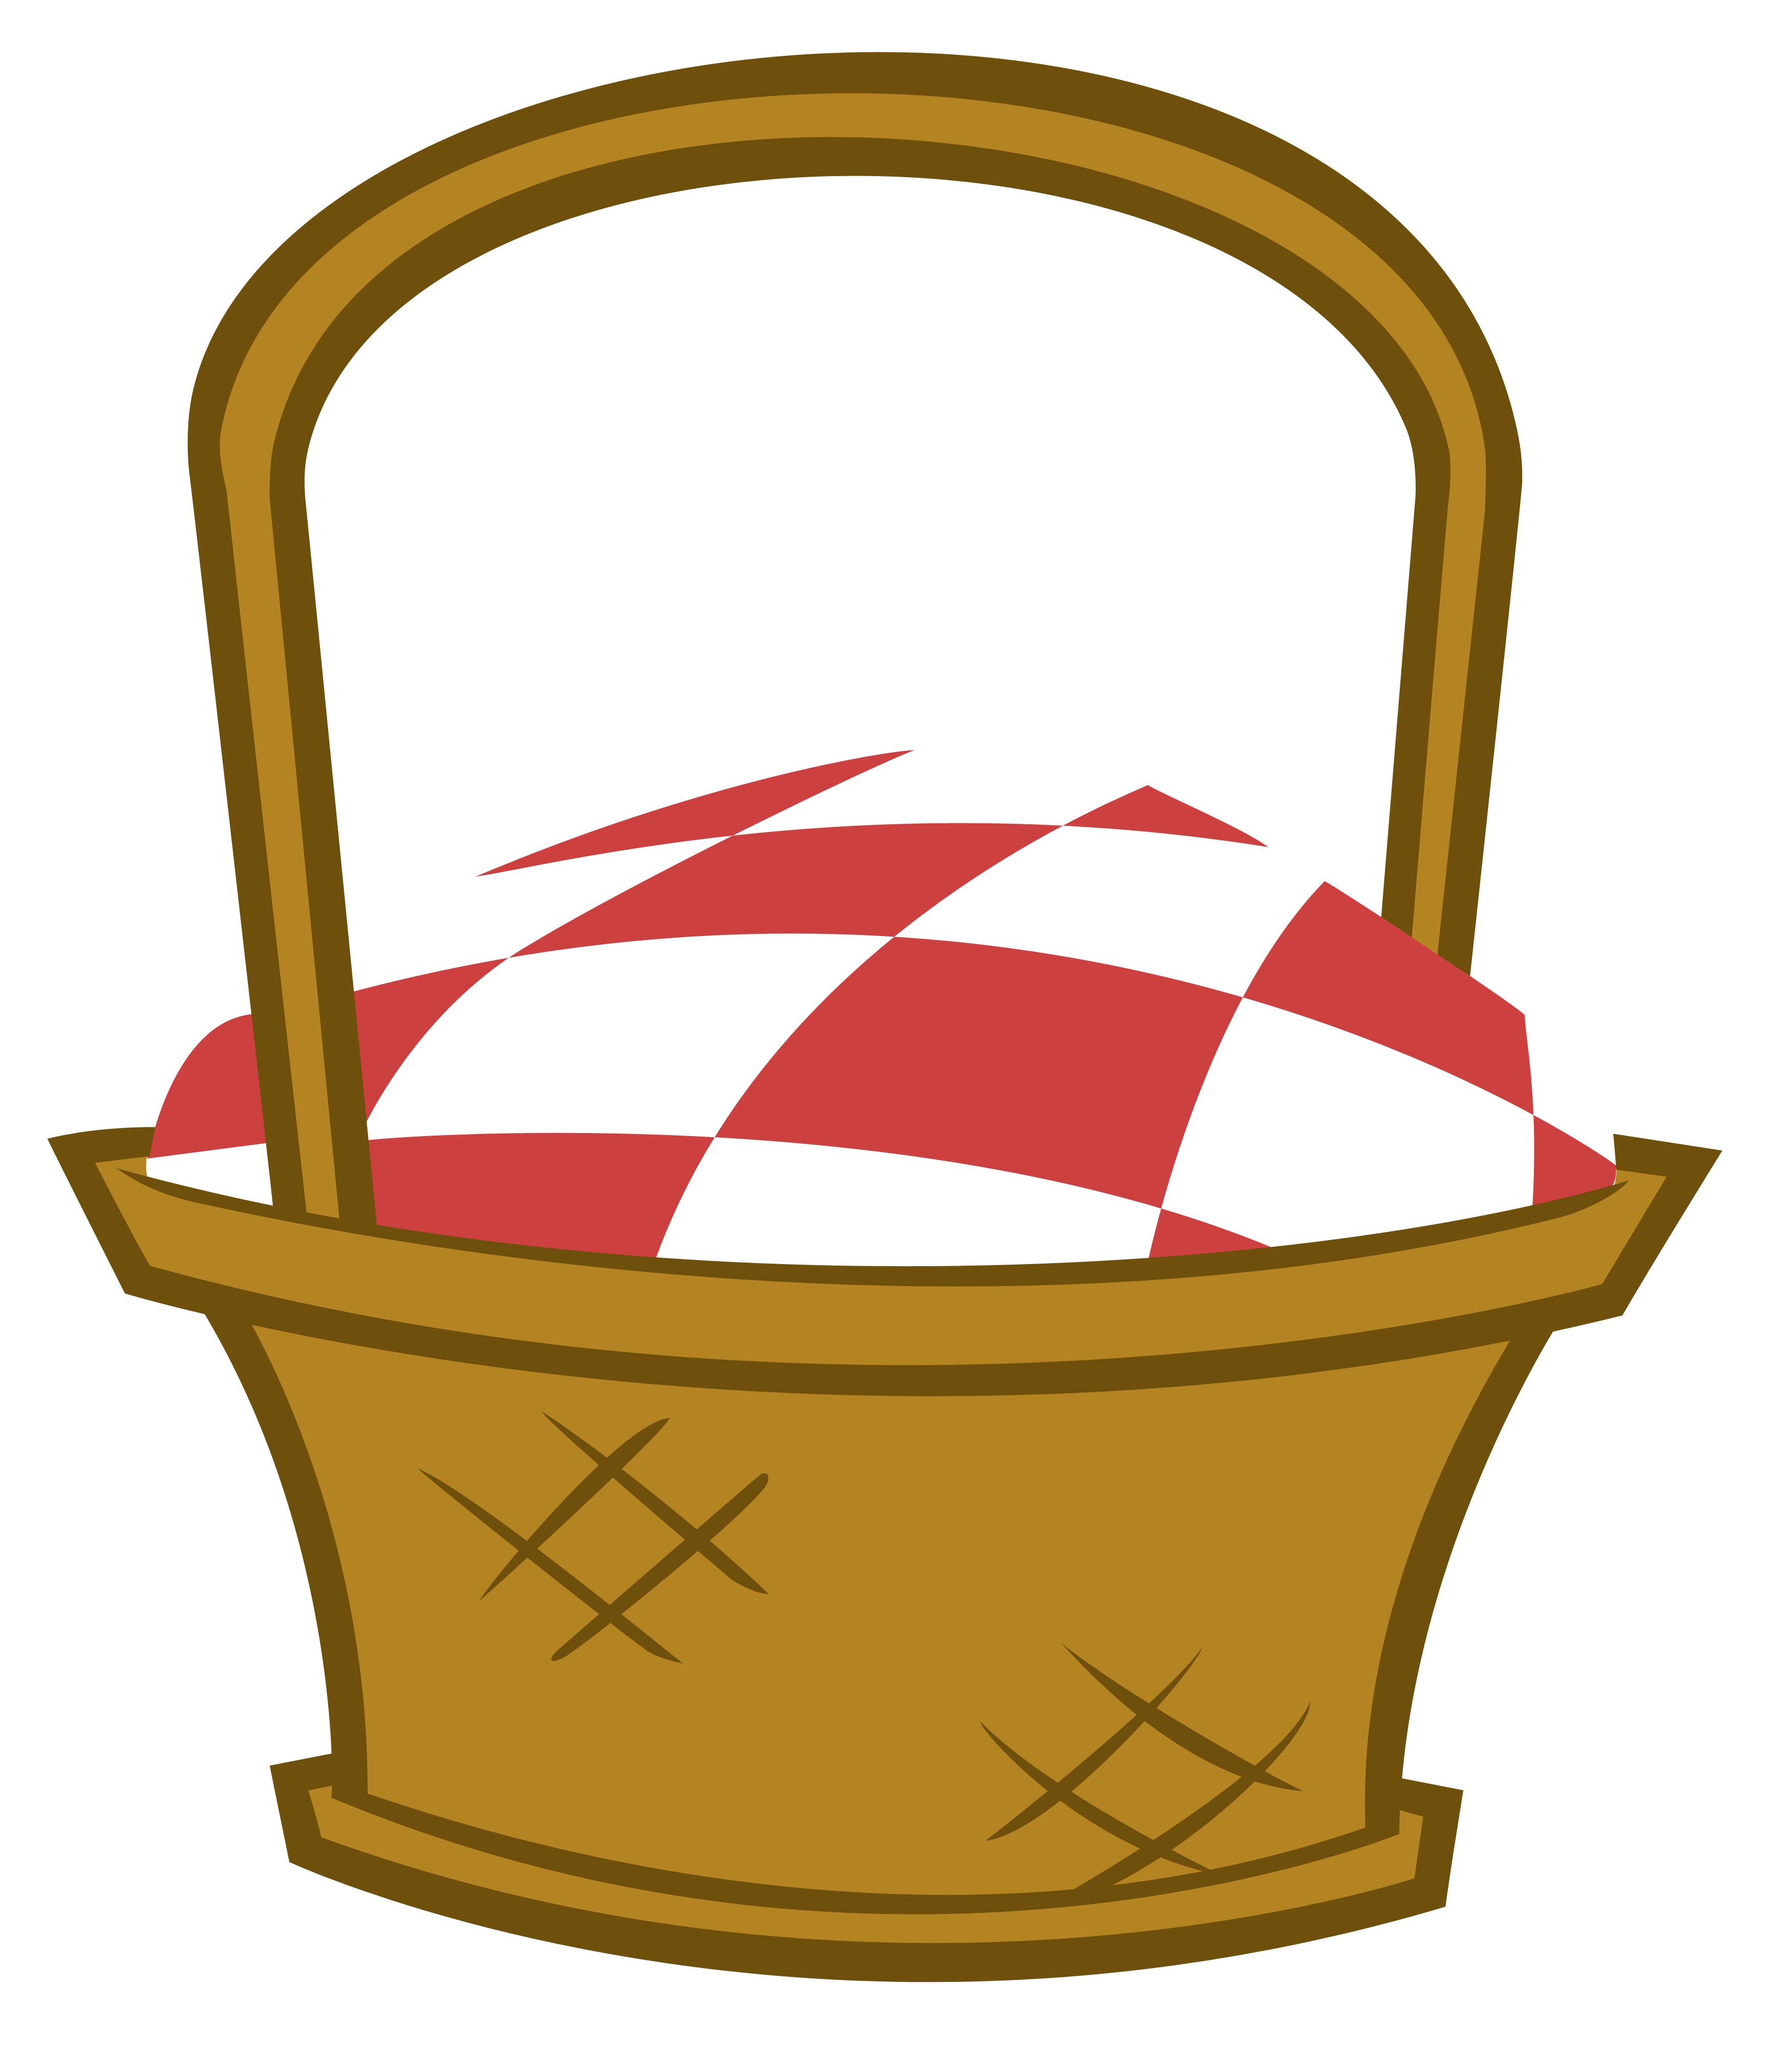 svg library download Cinnamon roll clipart. Picnic basket with ants